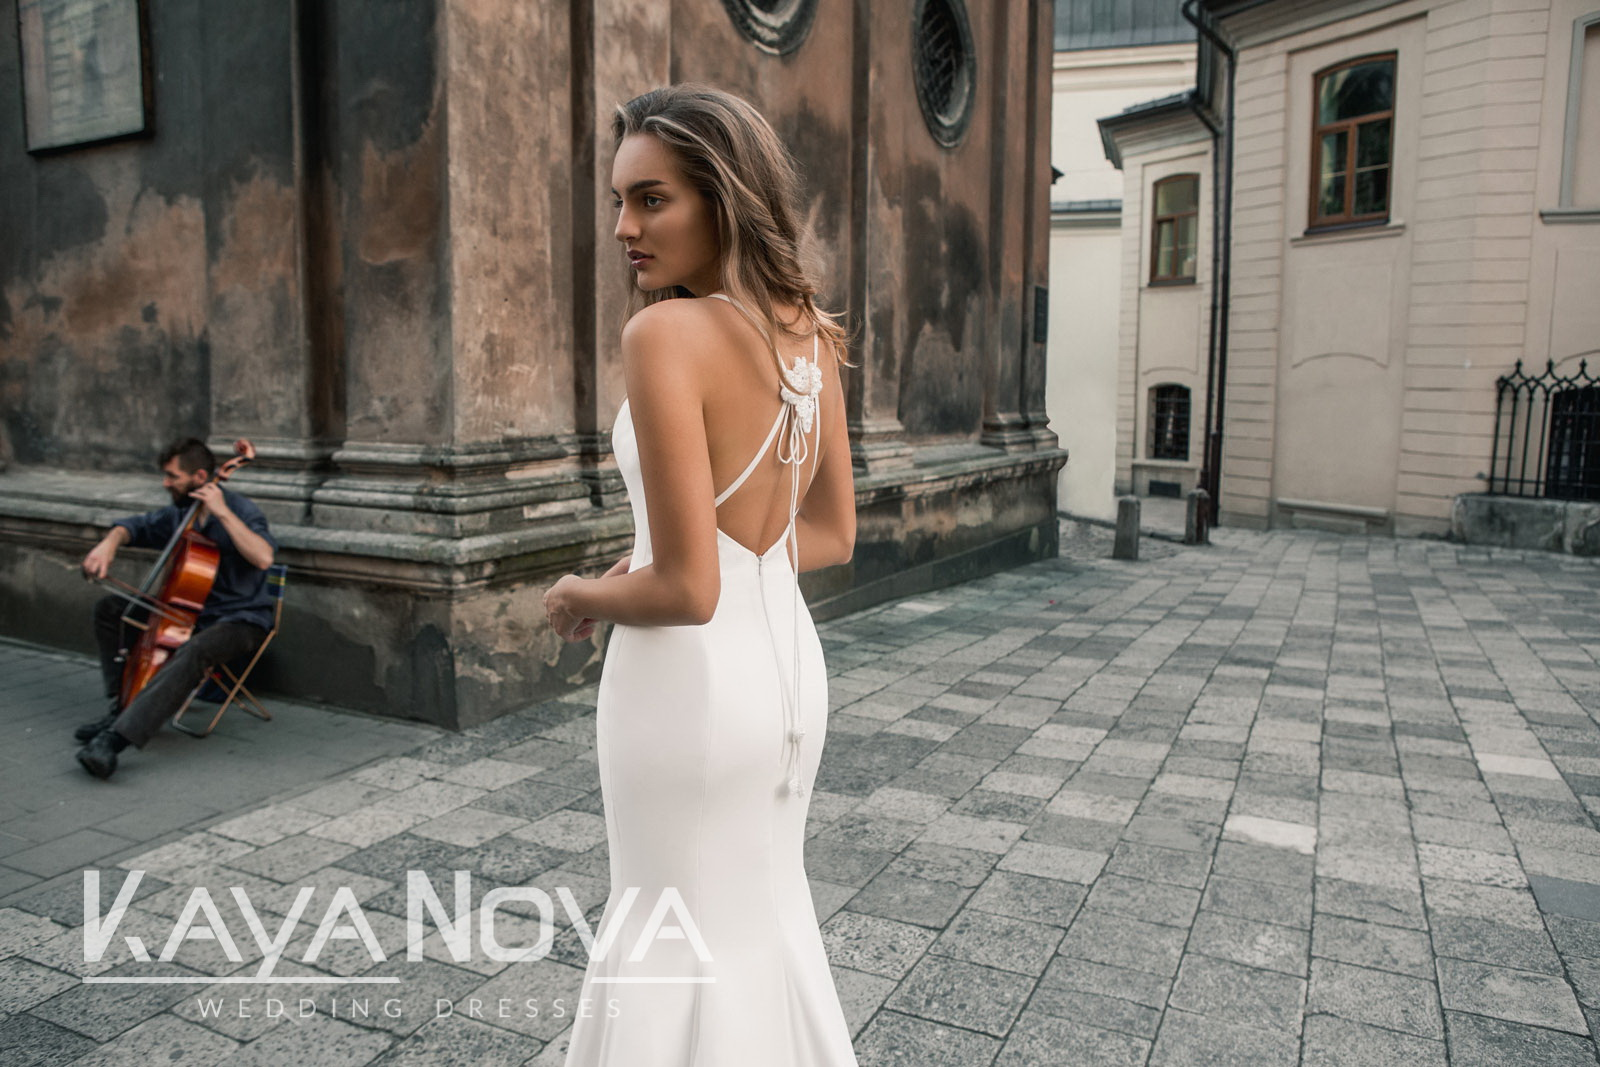 https://kayawedding.com/images/stories/virtuemart/product/Suzanne 5.jpg